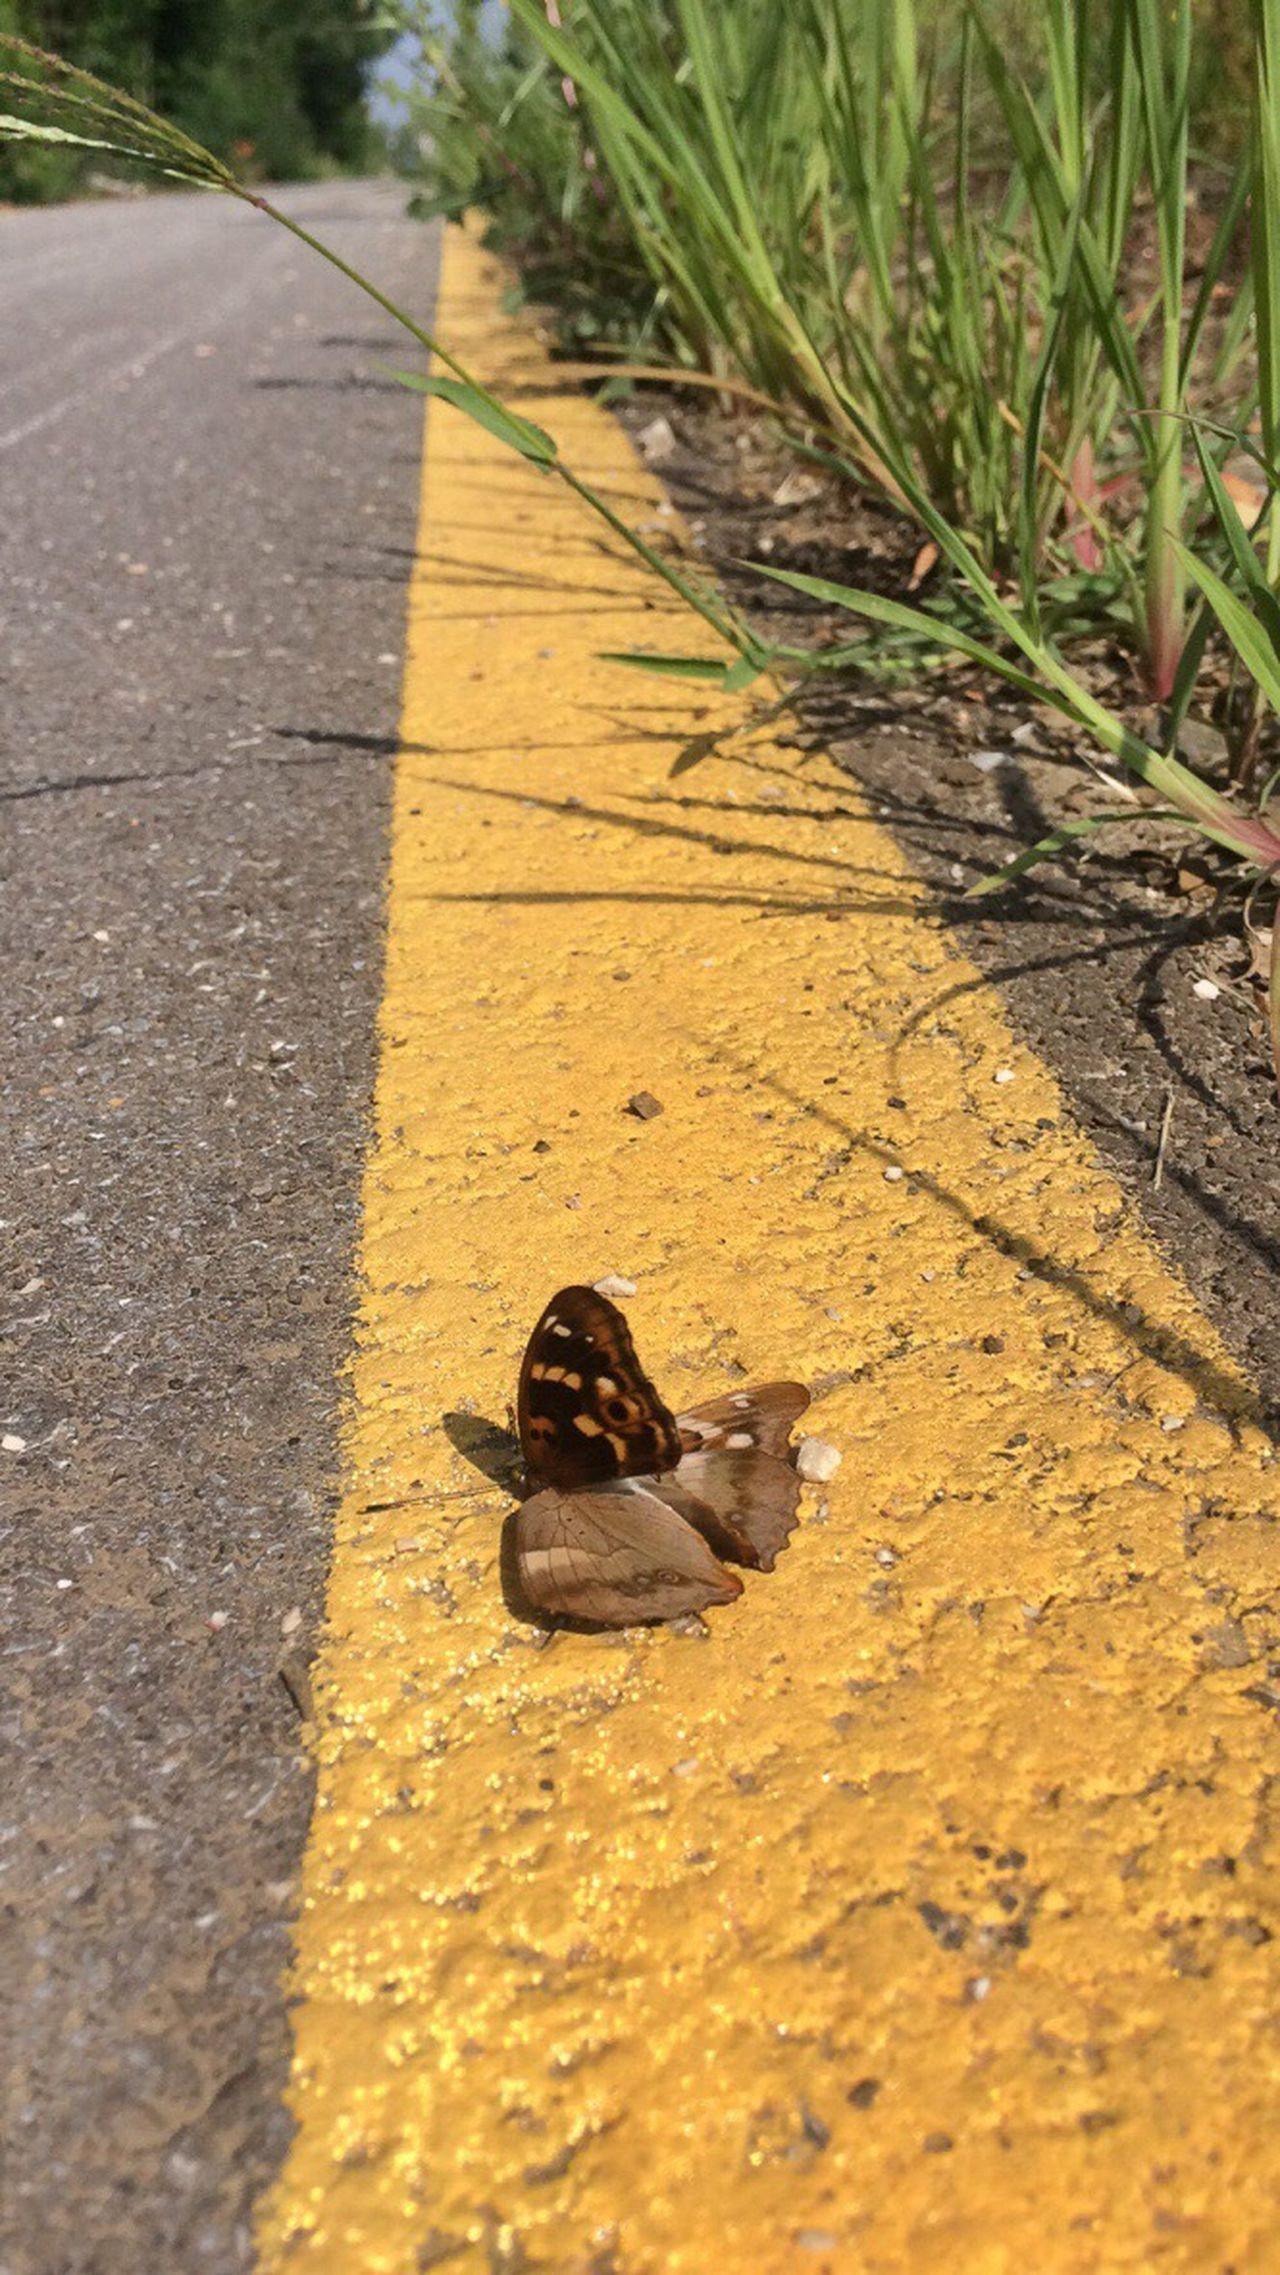 A rest on the yellow road... One Animal Outdoors Animal Themes Papillon Roadside Close-up Roadsidephotography Papillion